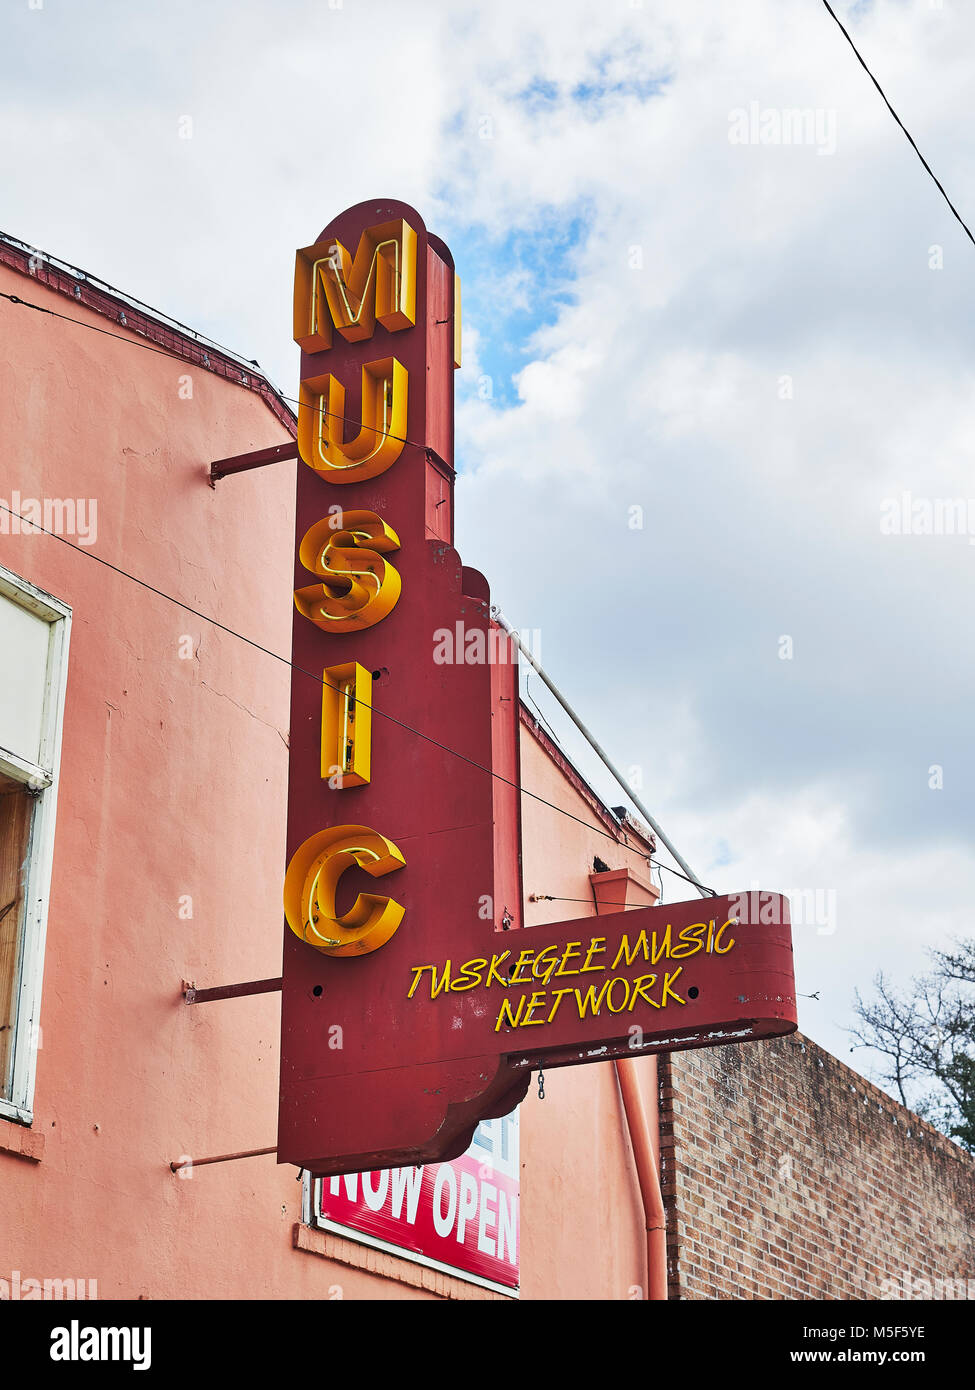 Old vintage neon exterior sign for Tuskegee Music Network store, shop or  business in Tuskegee Alabama, USA. - Stock Image